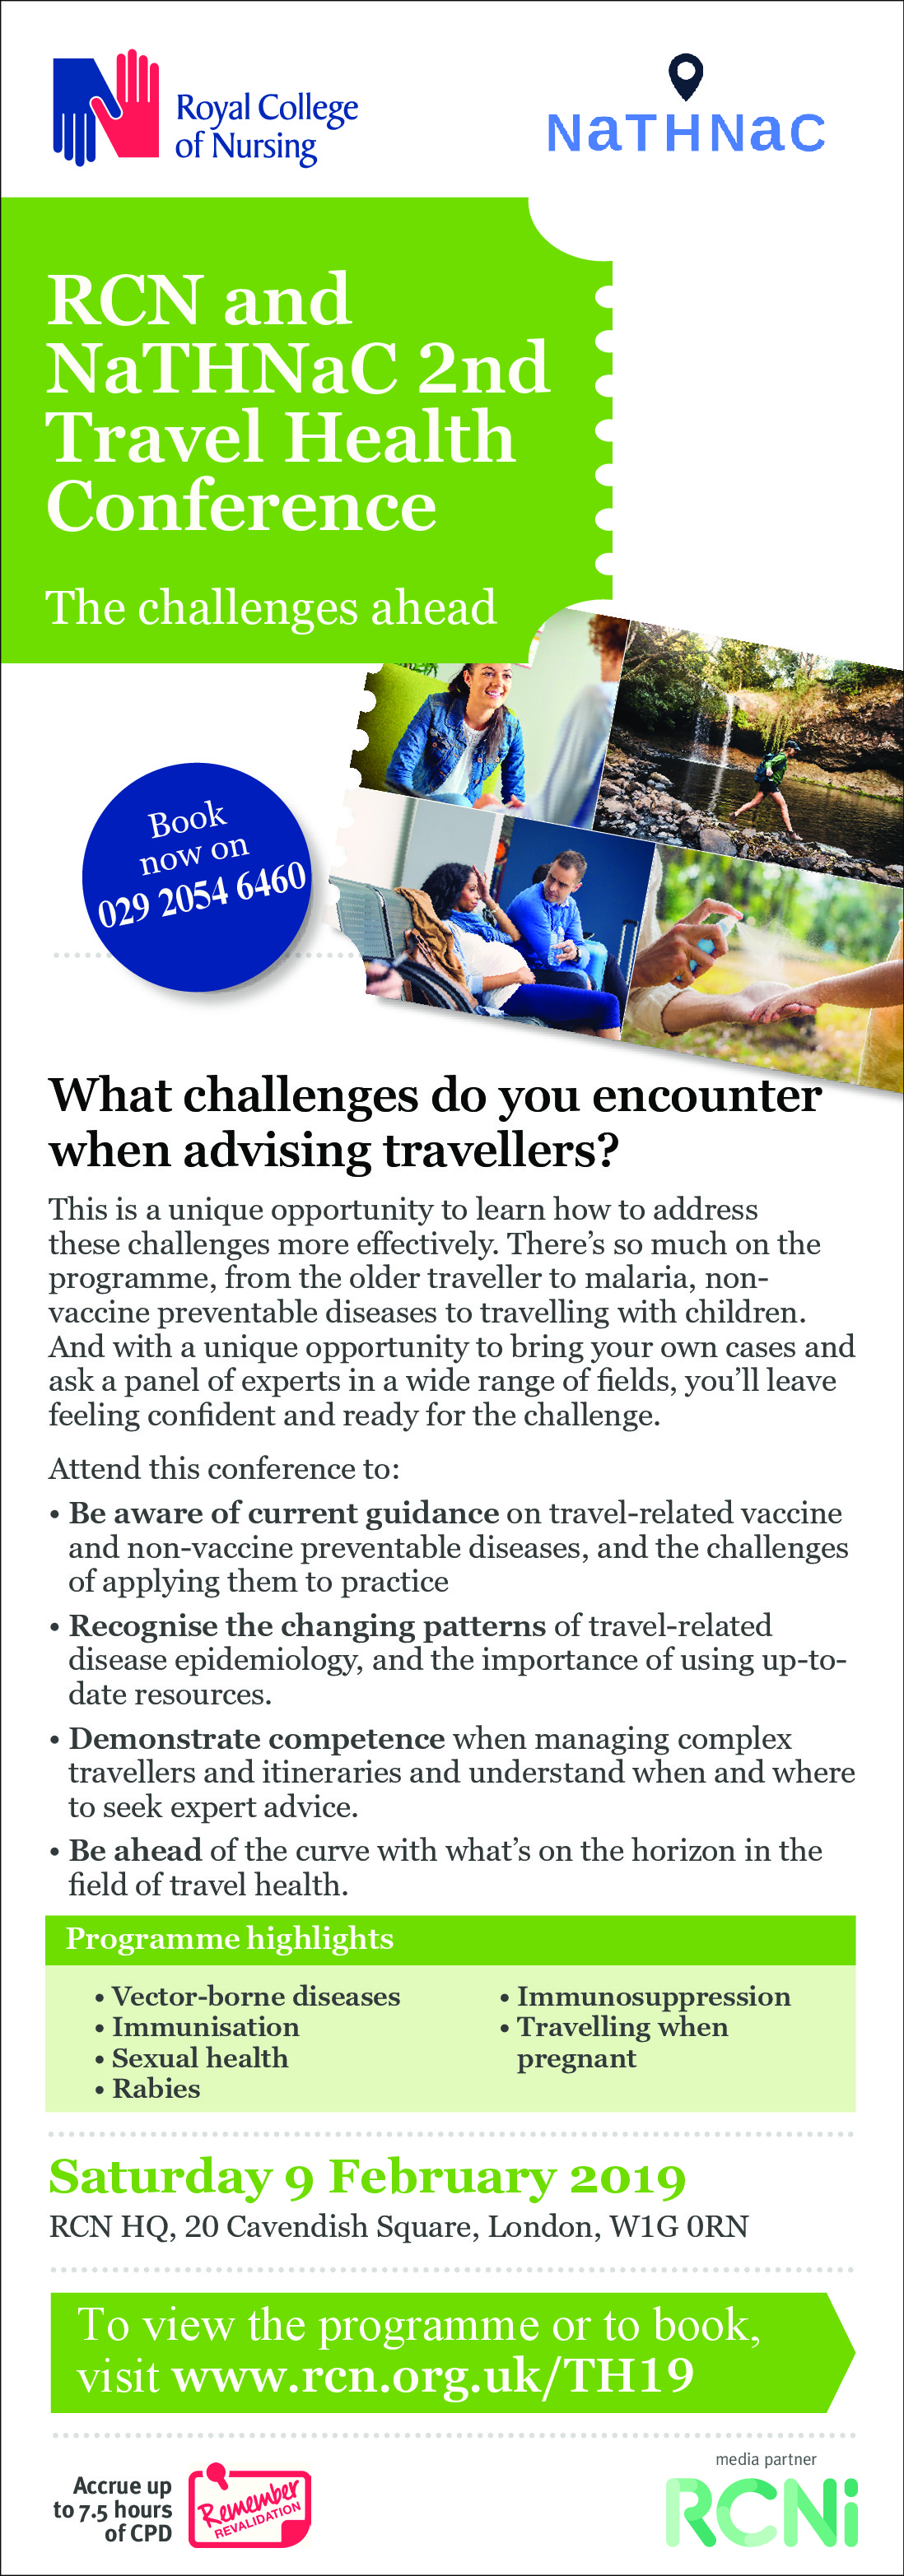 images/adverts/RCNi Travel Health 2019.jpg